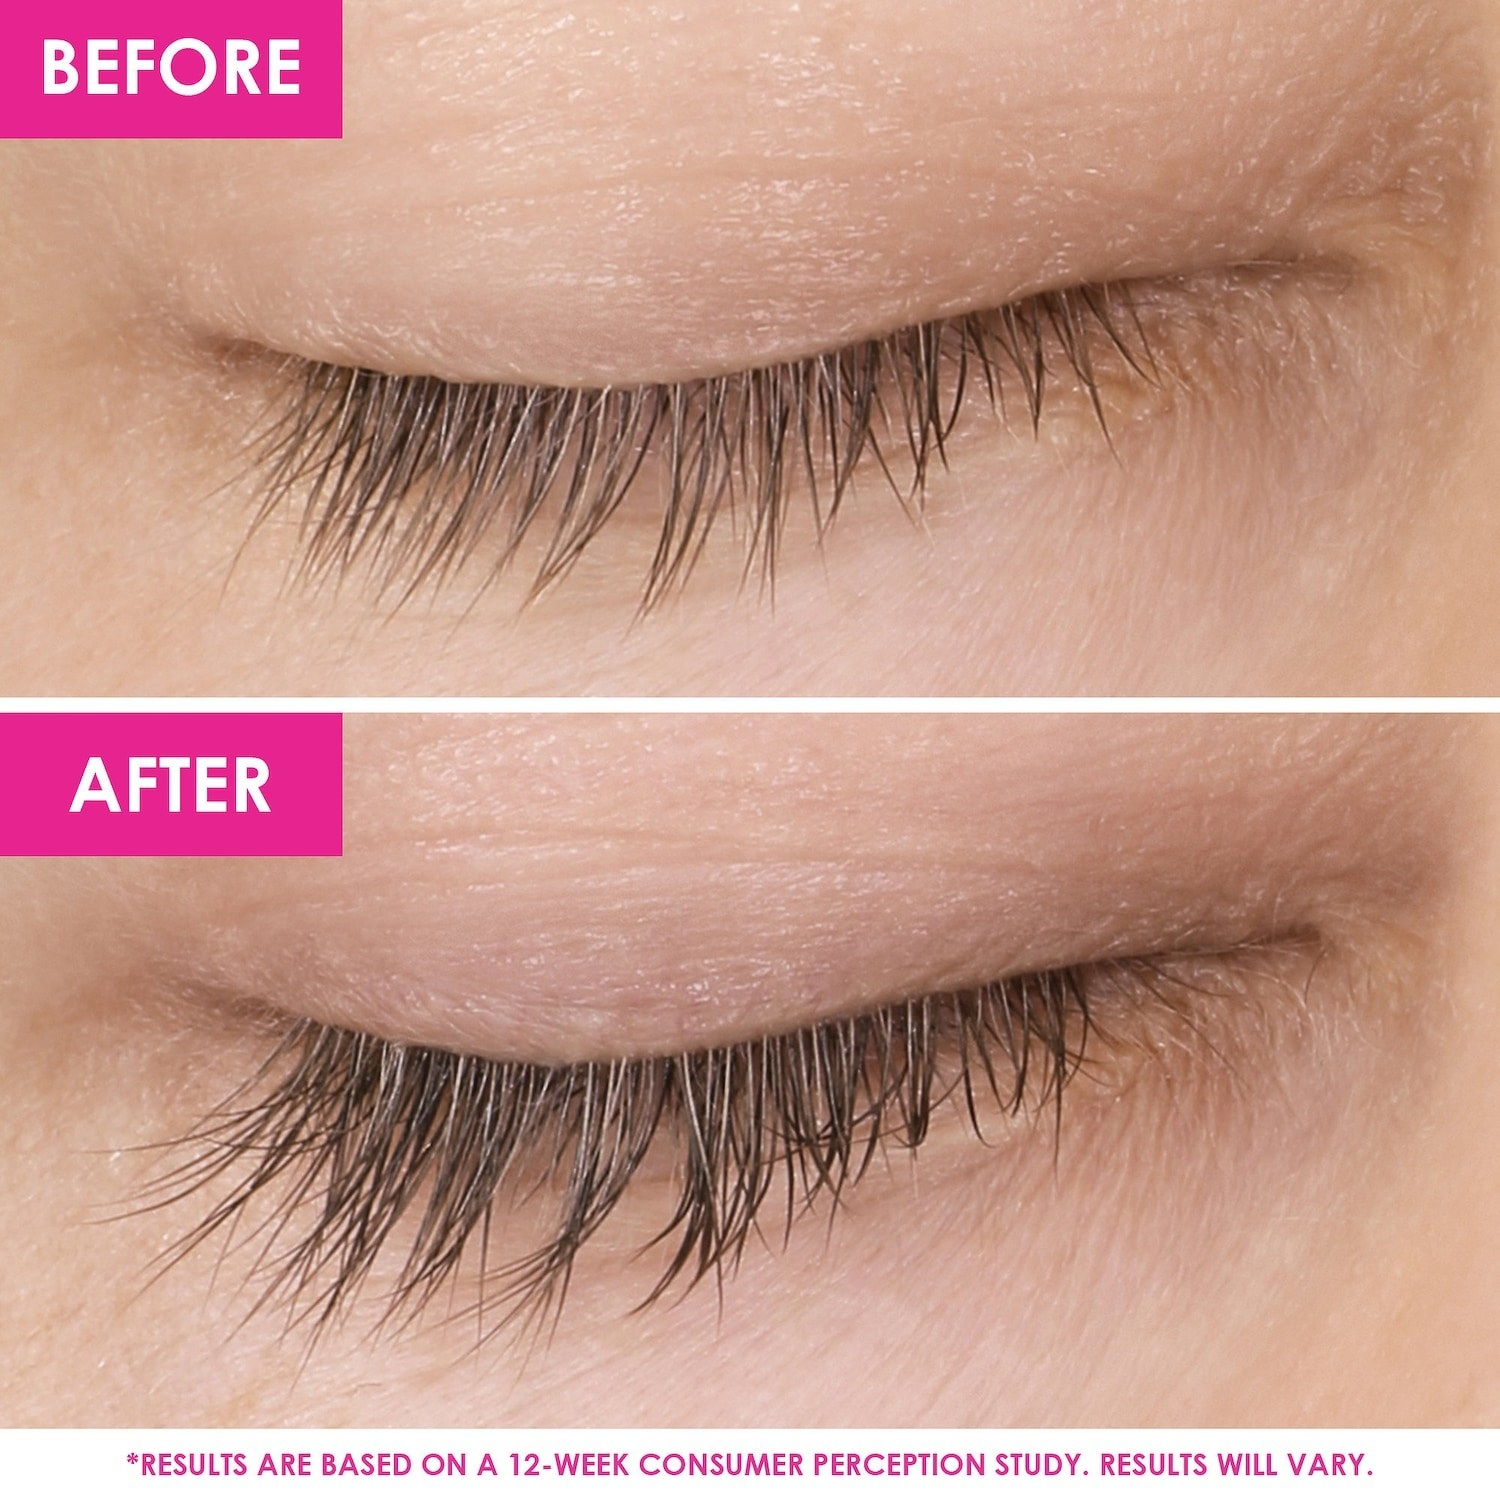 before photo of model with short lashes; an after photo of same model with visibly longer lashes